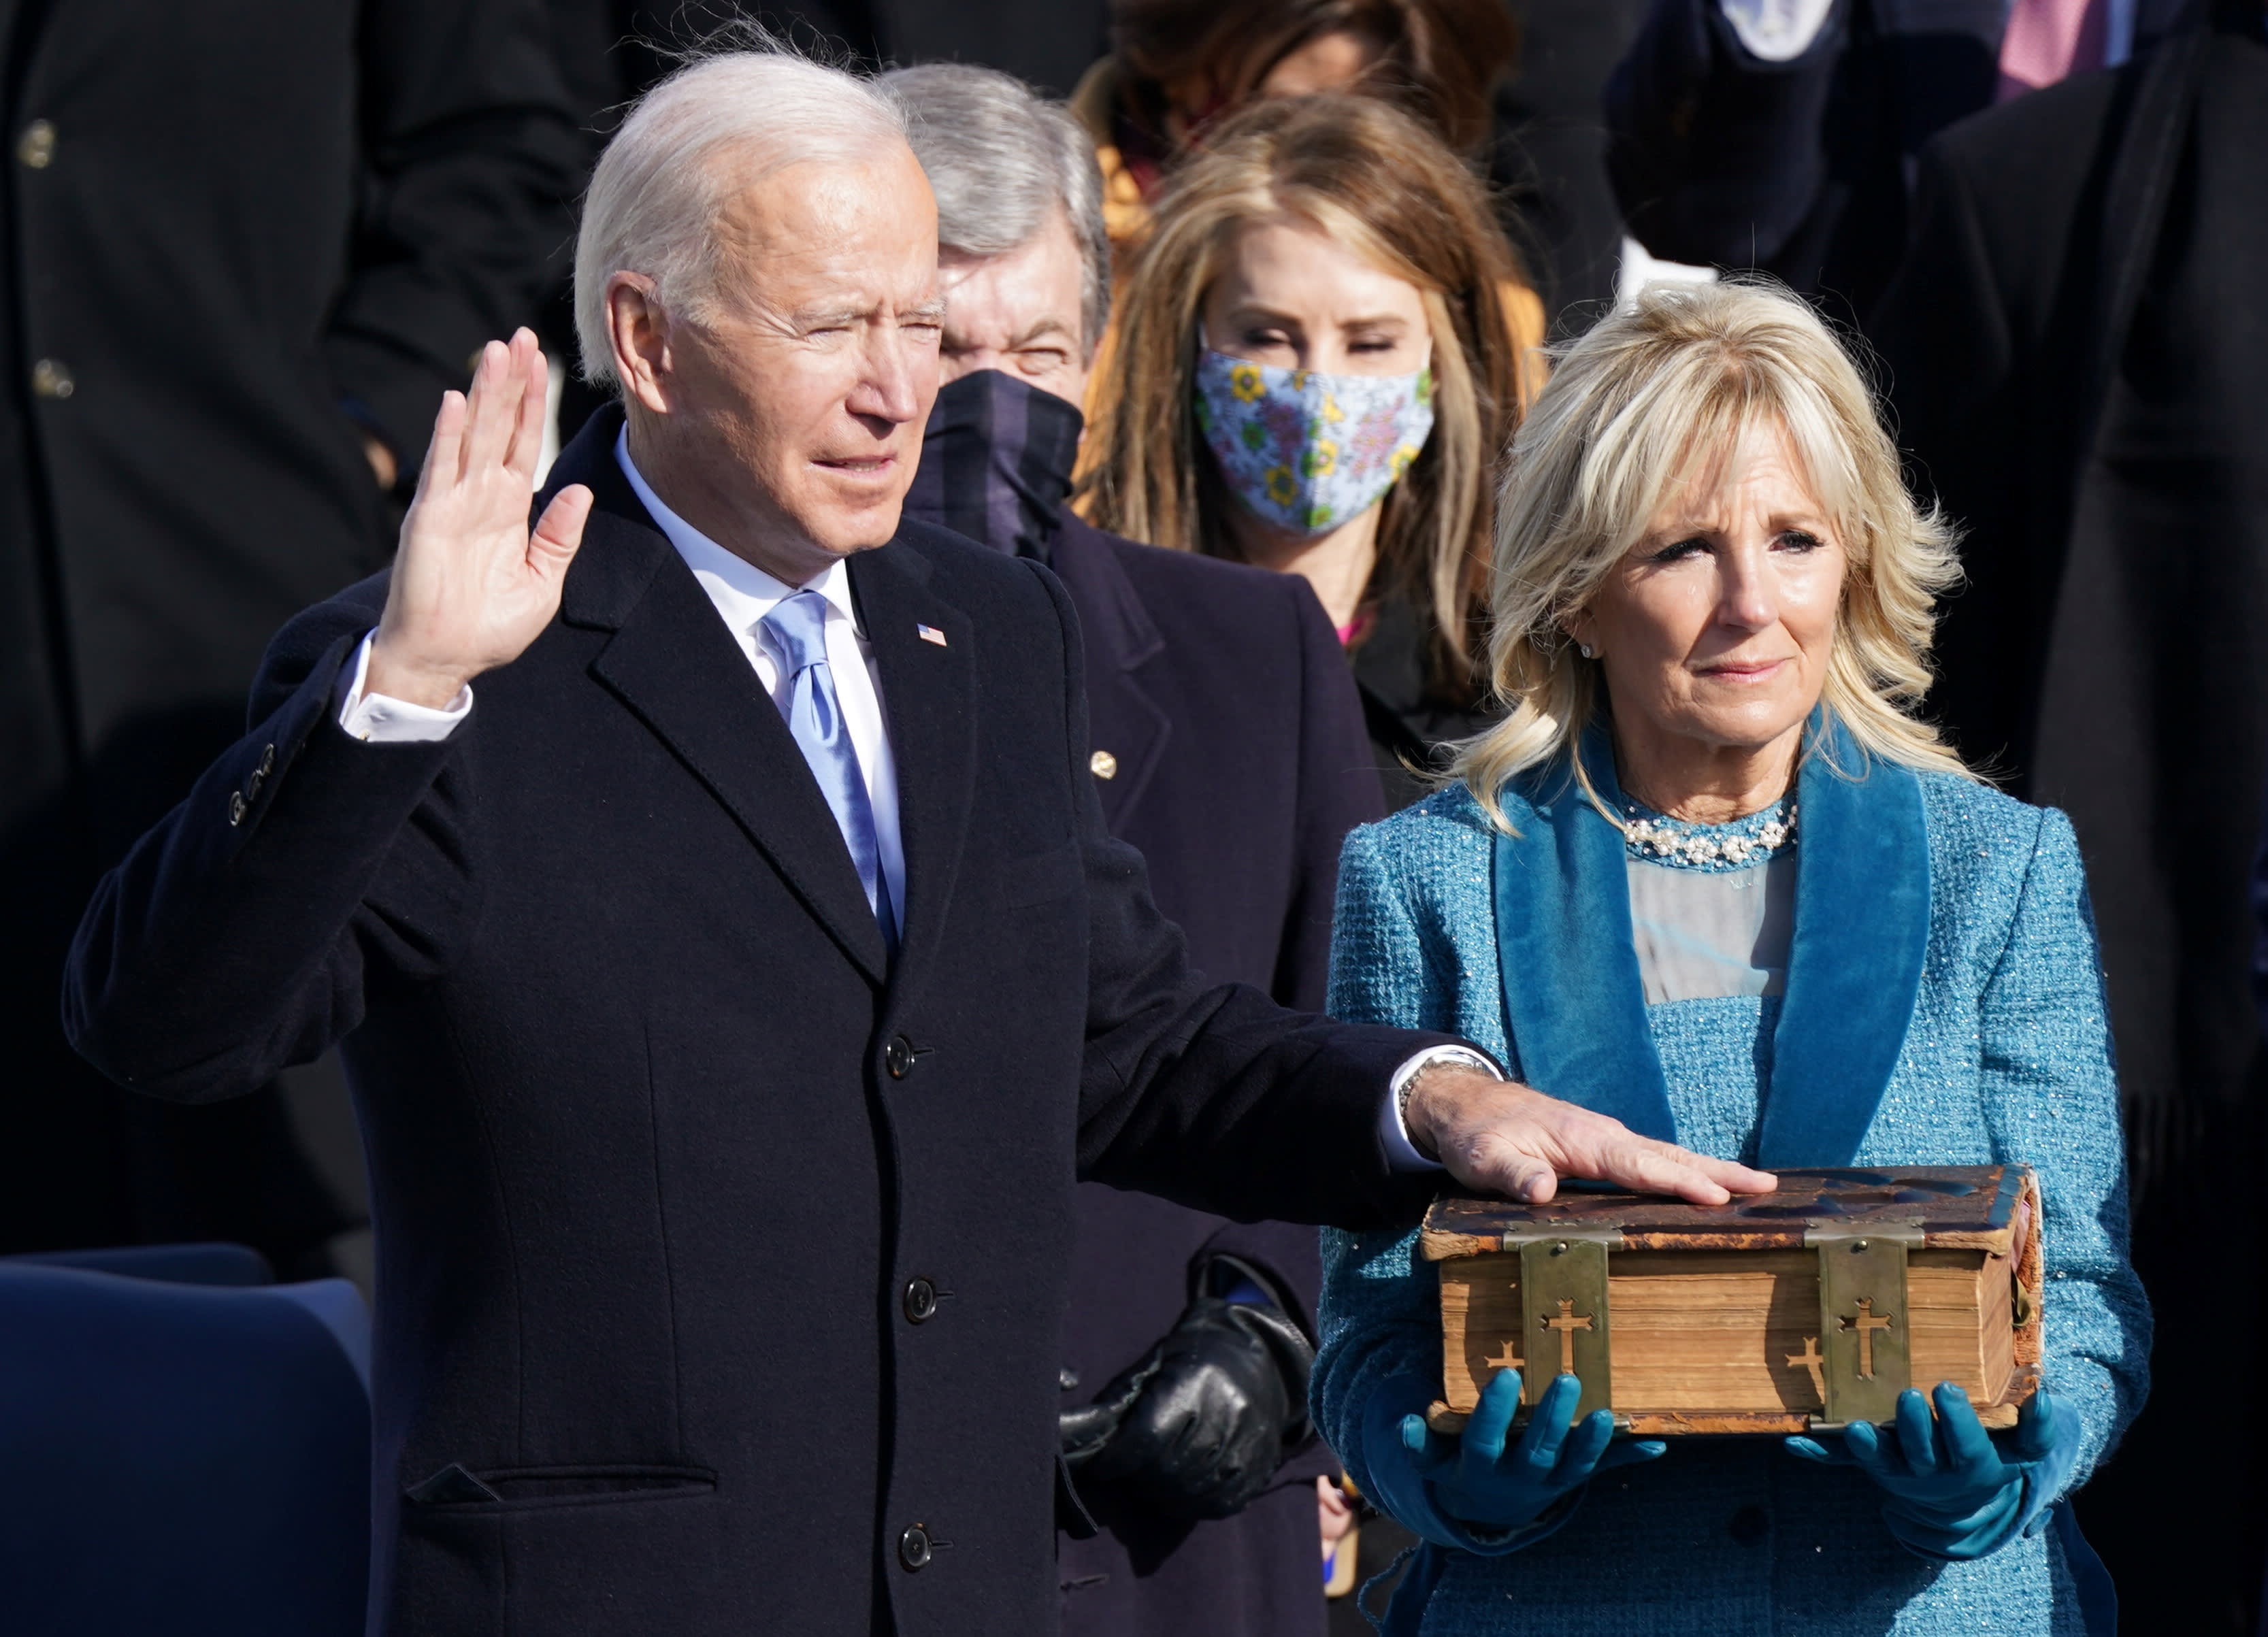 Joe Biden is sworn in as president: 'Democracy has prevailed'